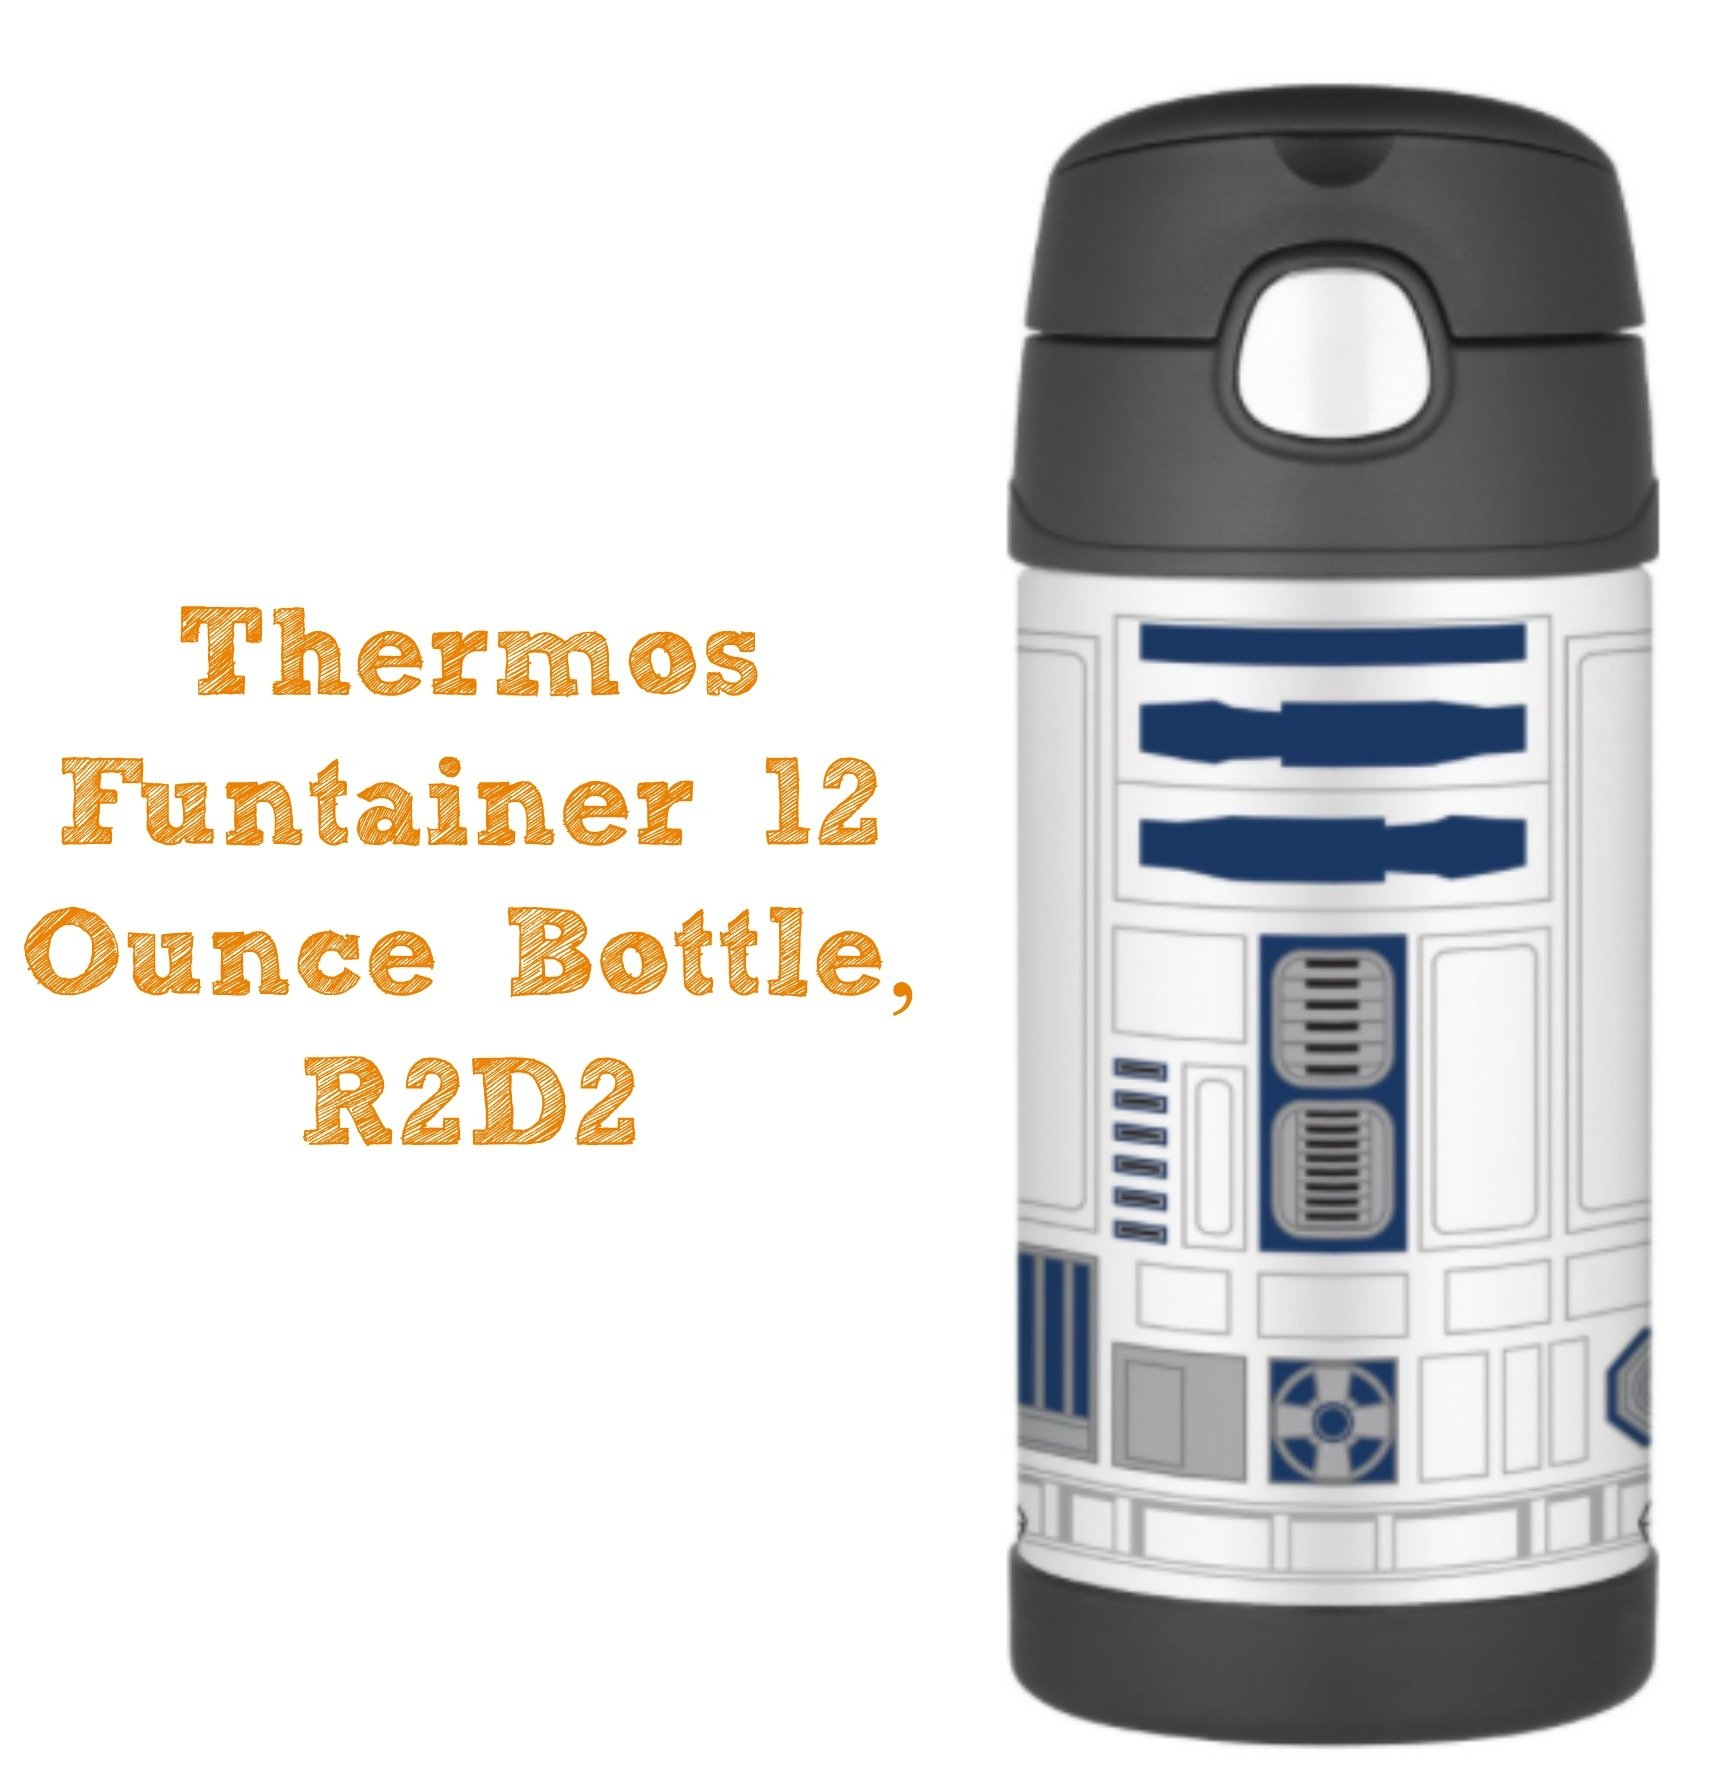 thermos-funtainer-12-ounce-bottle-r2d2